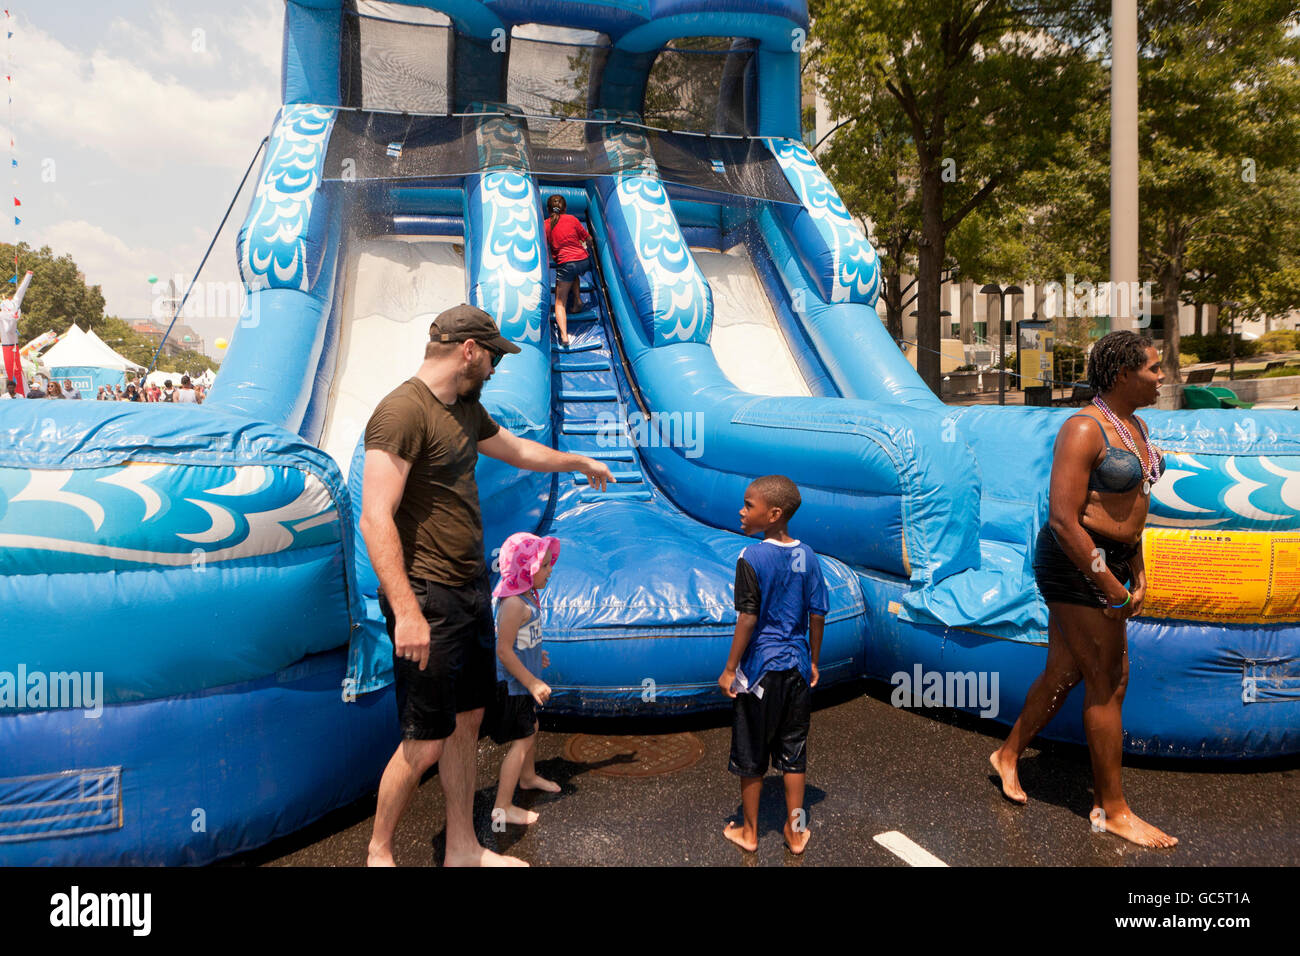 Inflatable water slide at an outdoor event - USA - Stock Image